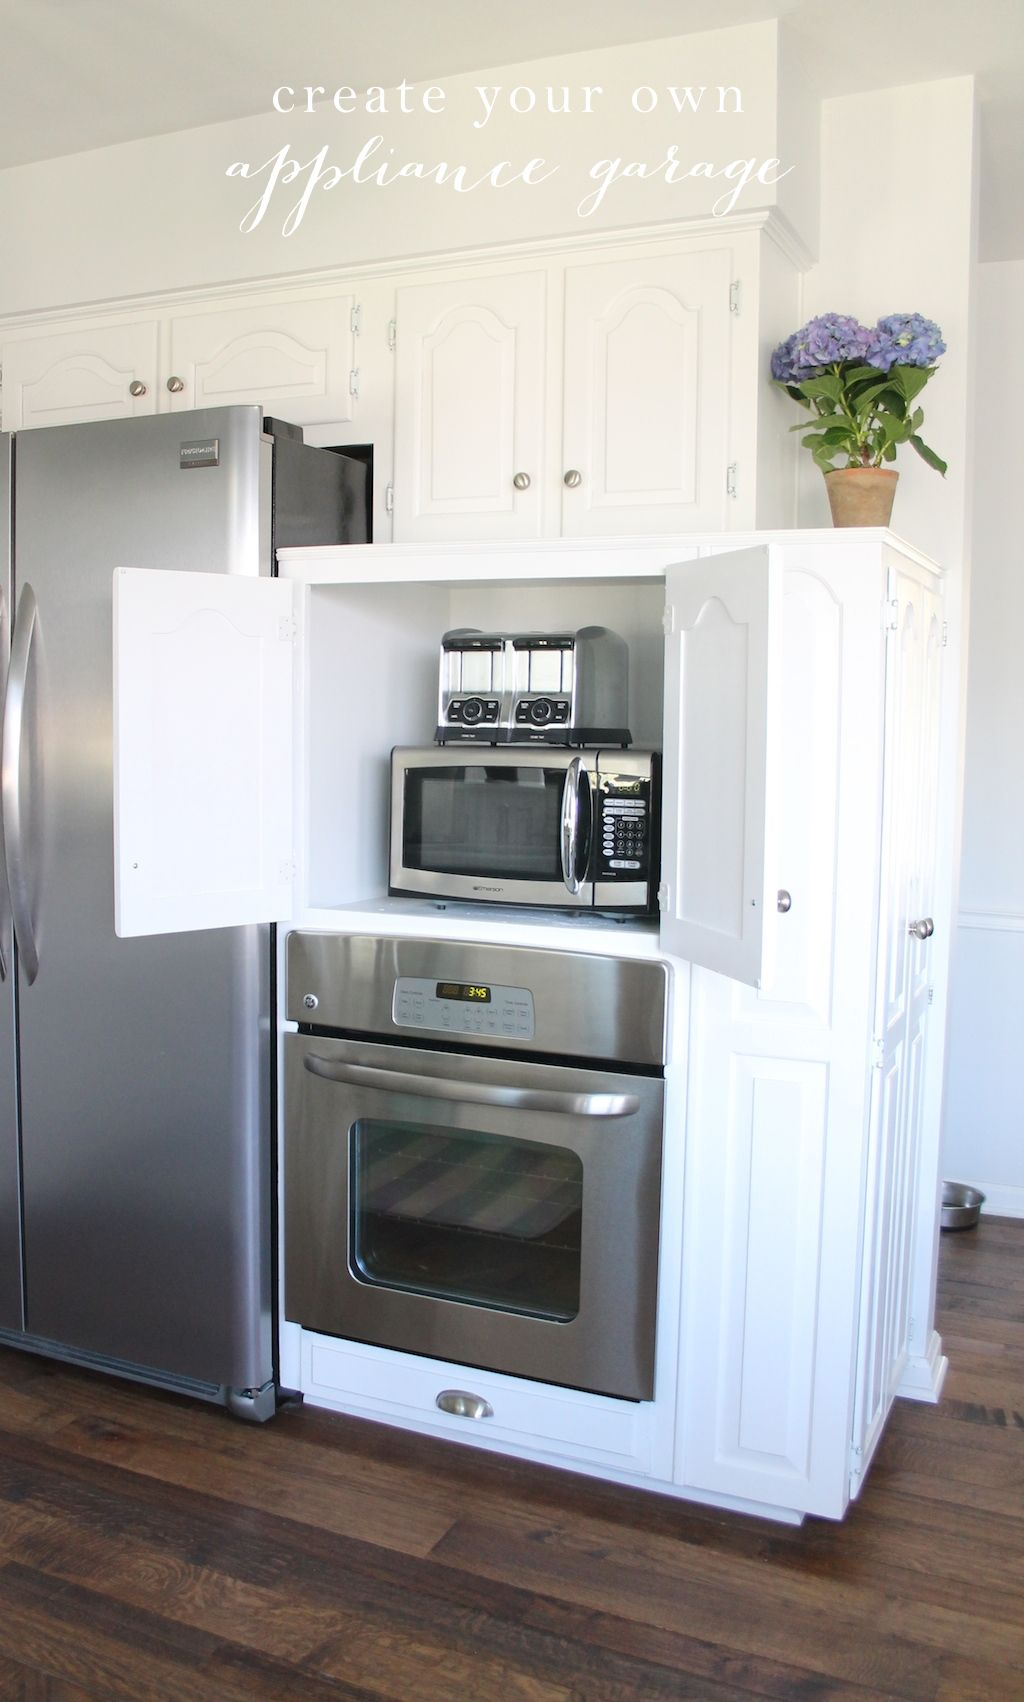 Kitchen Cabinets Appliance Garage Hide Your Kitchen Appliances And Maximize Storage With This